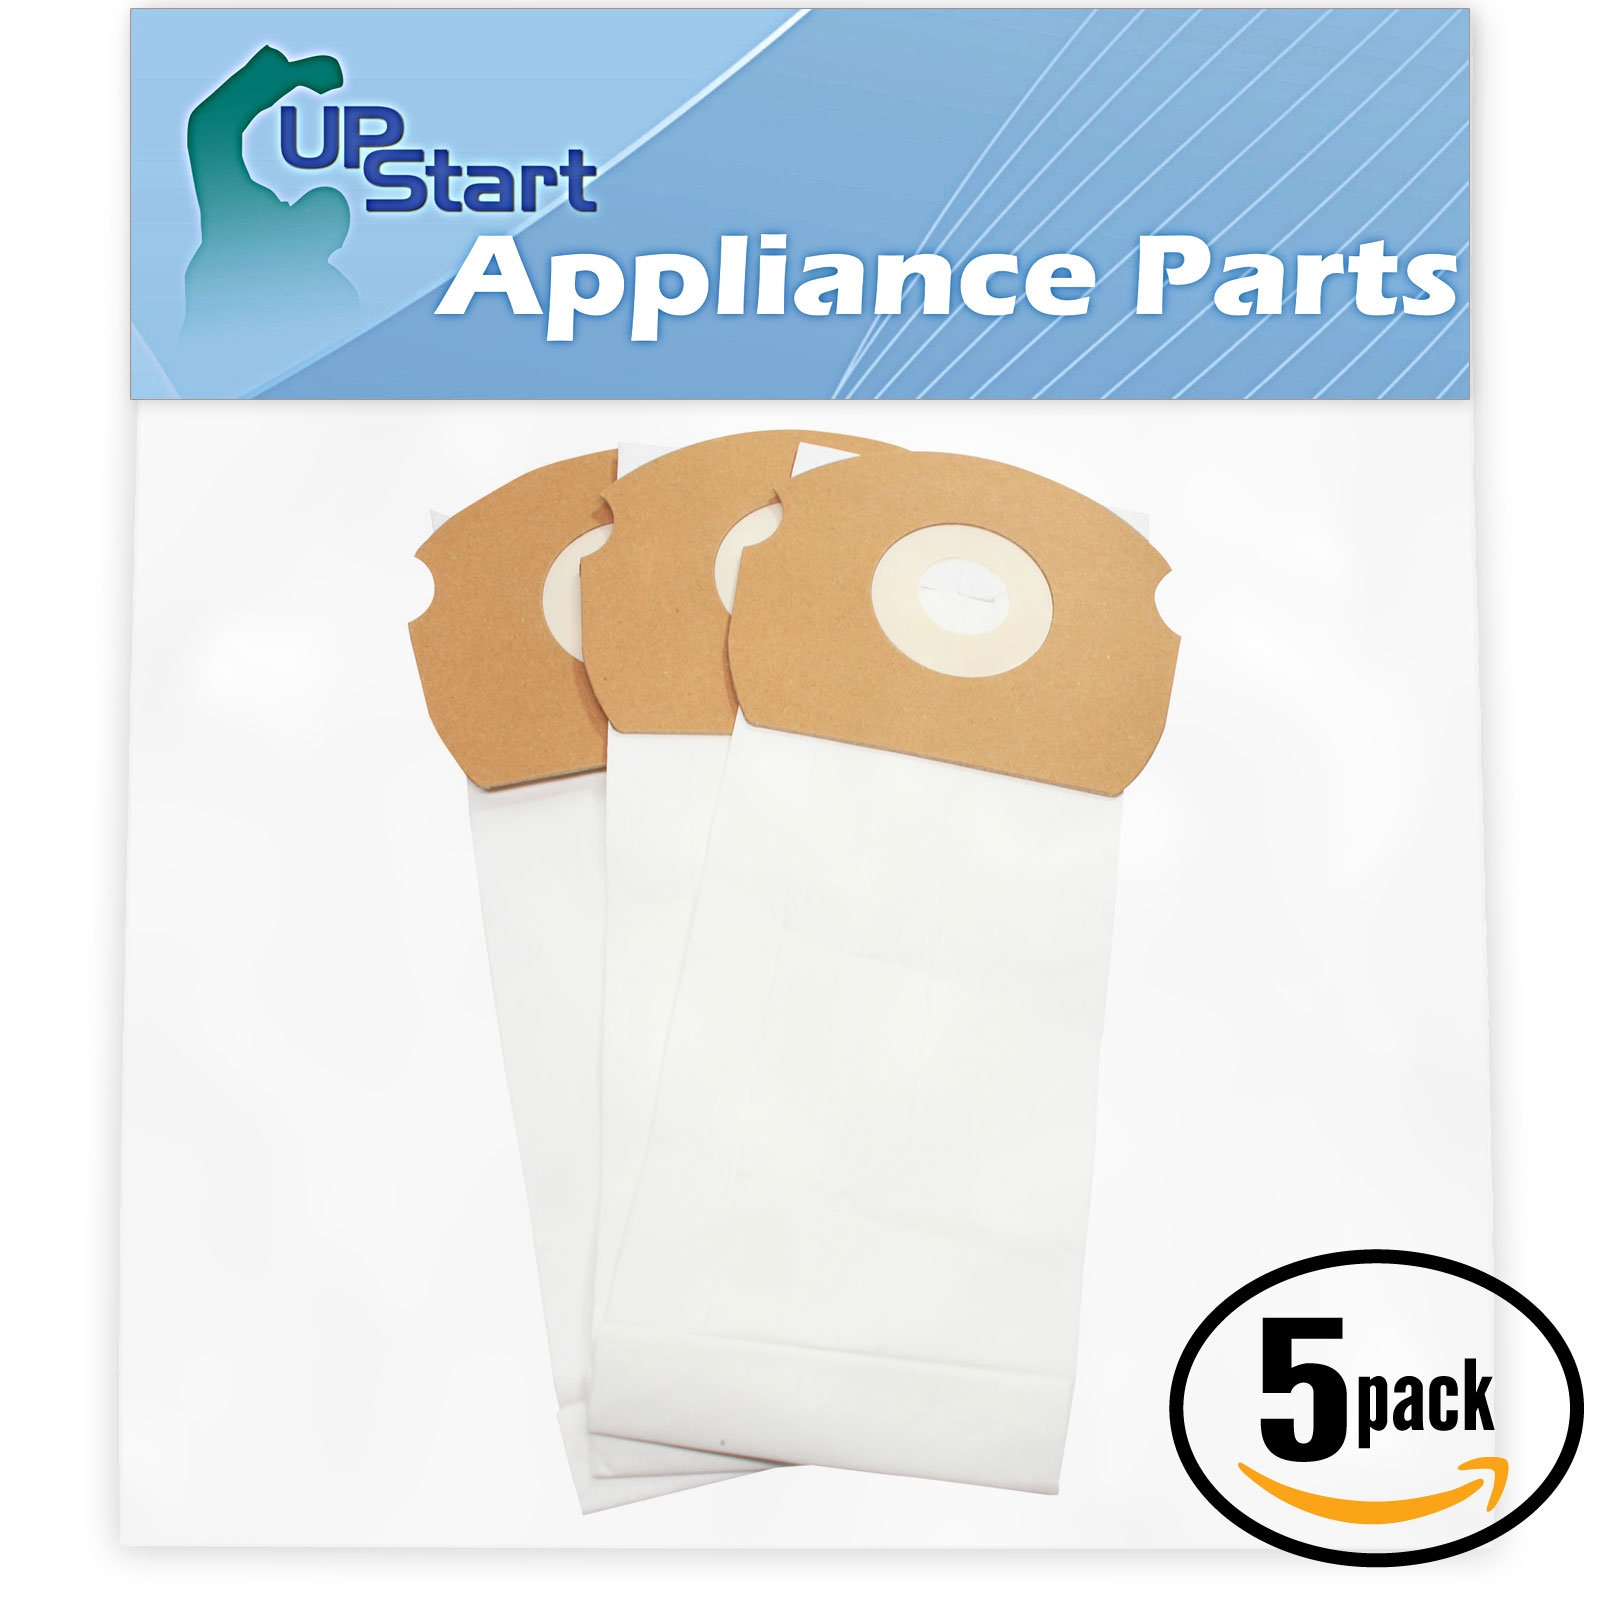 15 Replacement Eureka AirSpeed AS1050 Vacuum Bags  - Compatible Eureka 68155, AS Vacuum Bags (5-Pack - 3 Vacuum Bags per Pack)